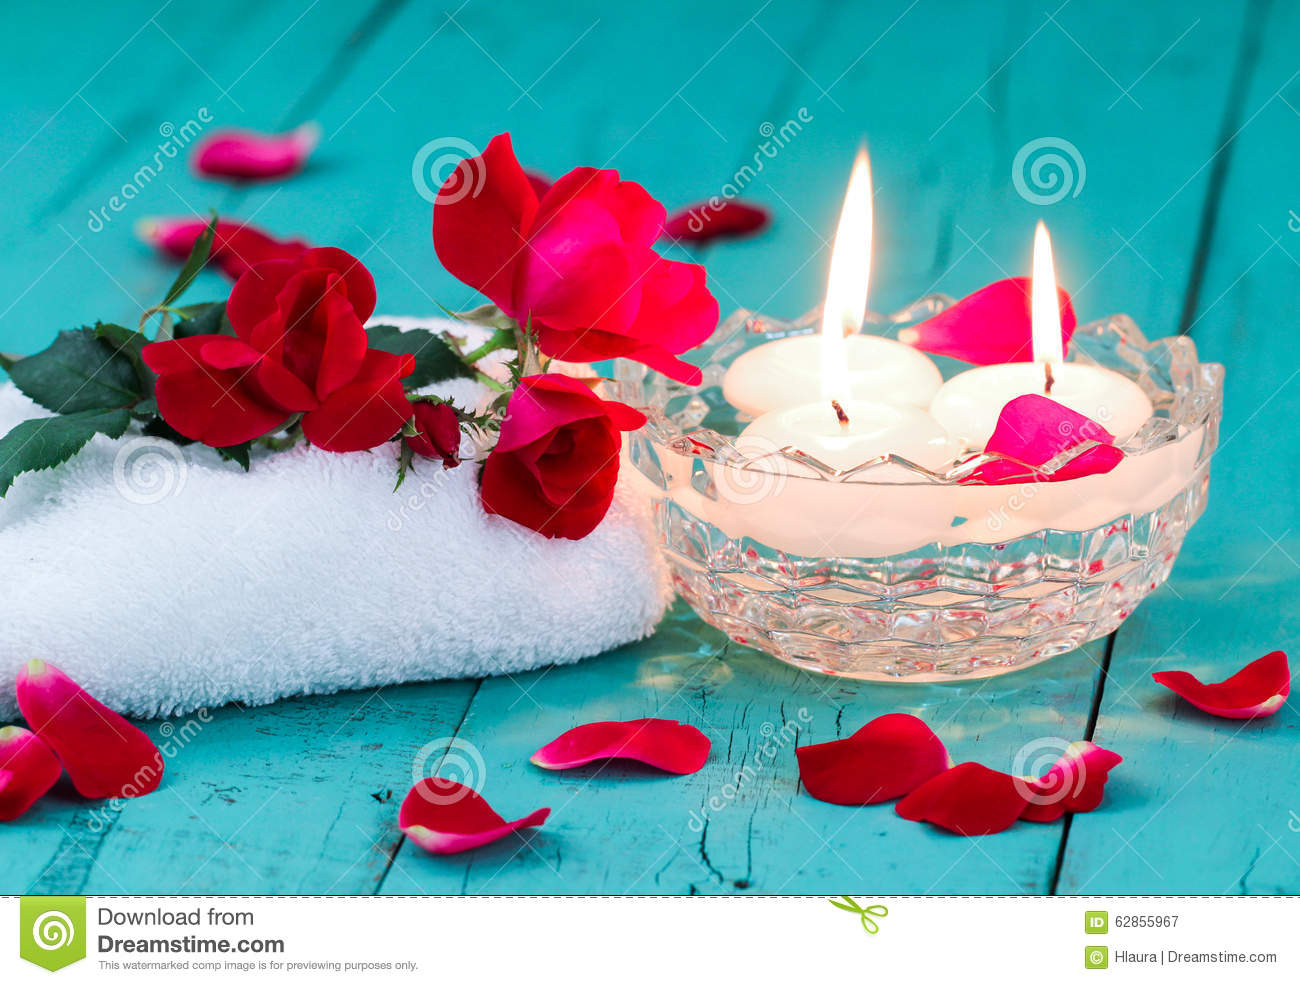 Red Roses And Candles On Teal Blue Wood Background Stock Image ...